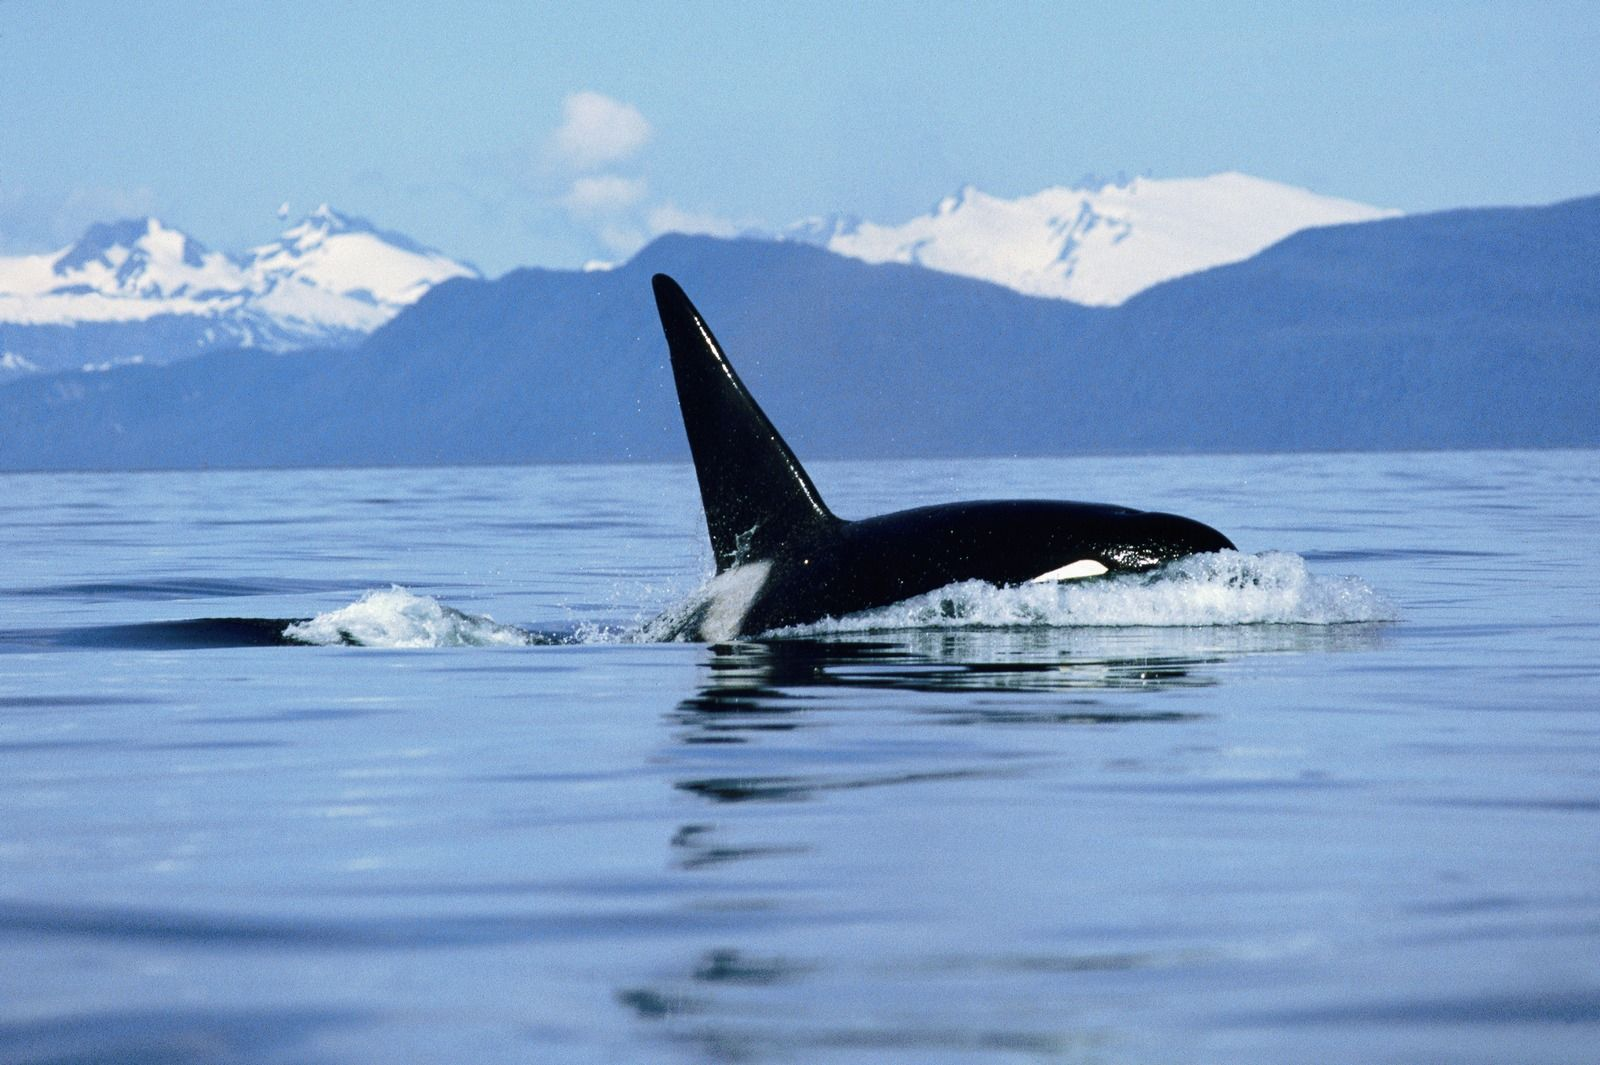 Killer whales wallpapers wallpaper 20481536 pictures of killer killer whales wallpapers wallpaper 20481536 pictures of killer whales wallpapers 49 wallpapers altavistaventures Gallery